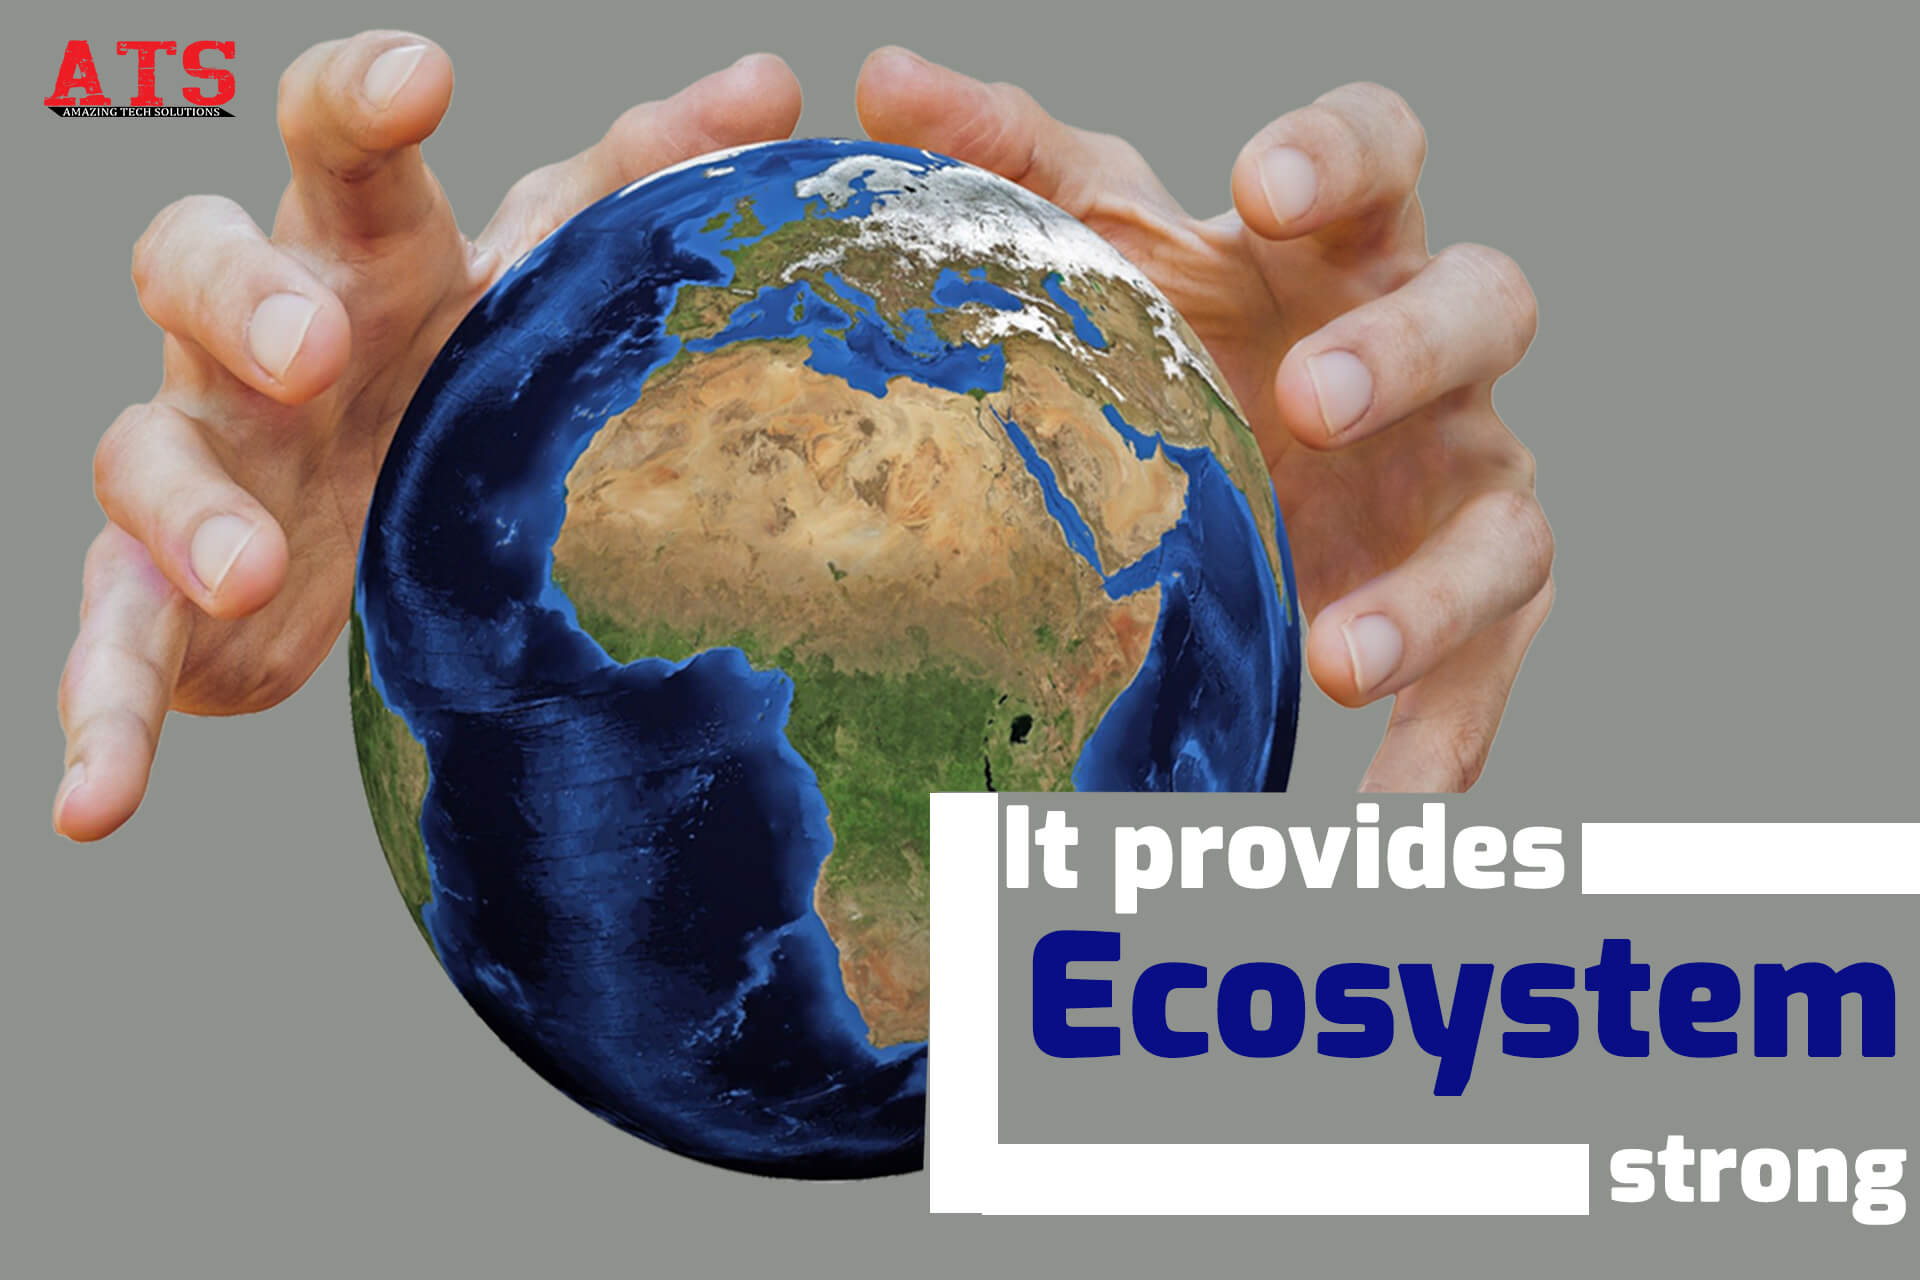 Salesforce provide strong ecosystem